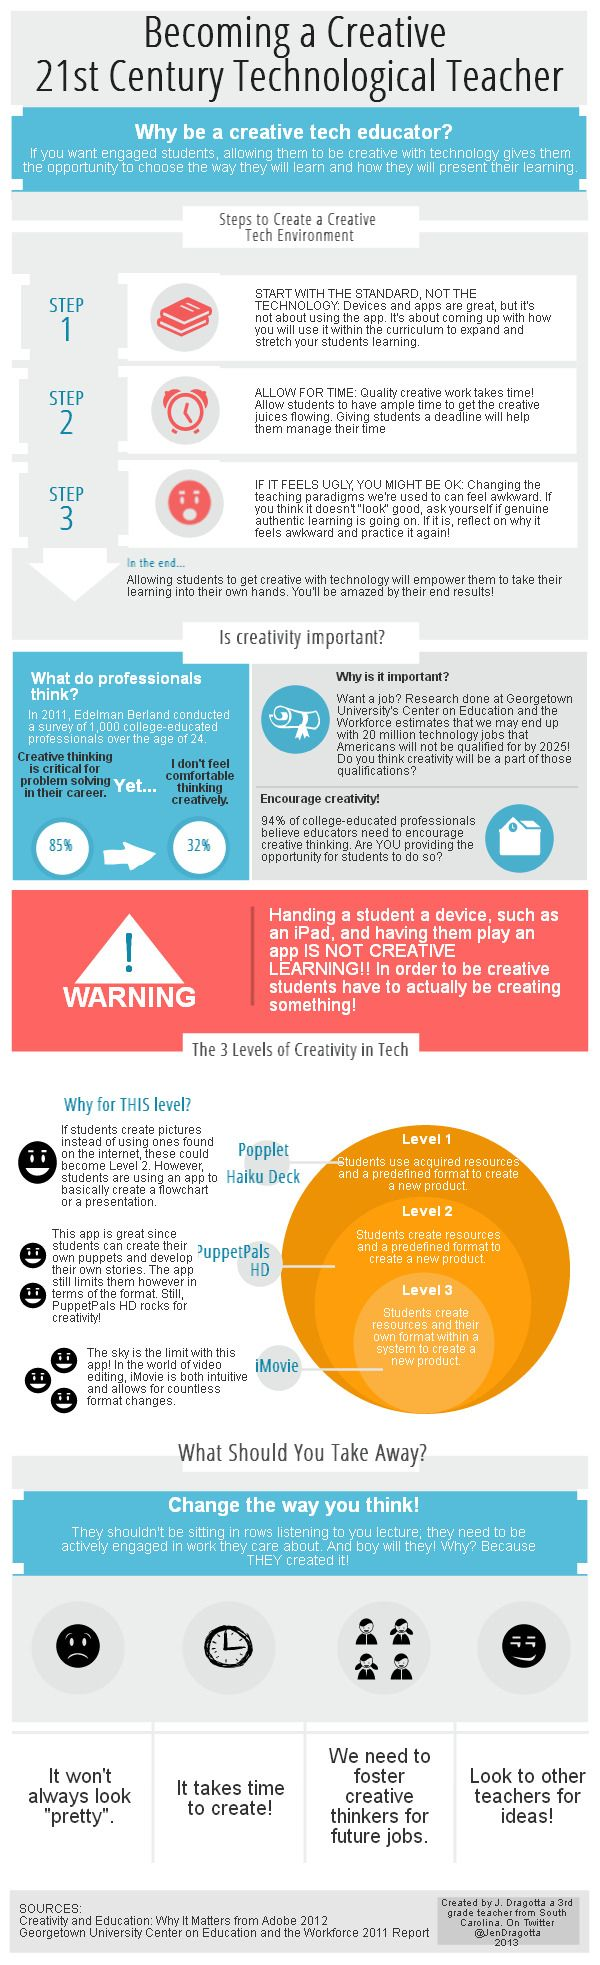 Becoming a Creative 21st Century Technological Teacher Infographic by Jennifer Dragotta